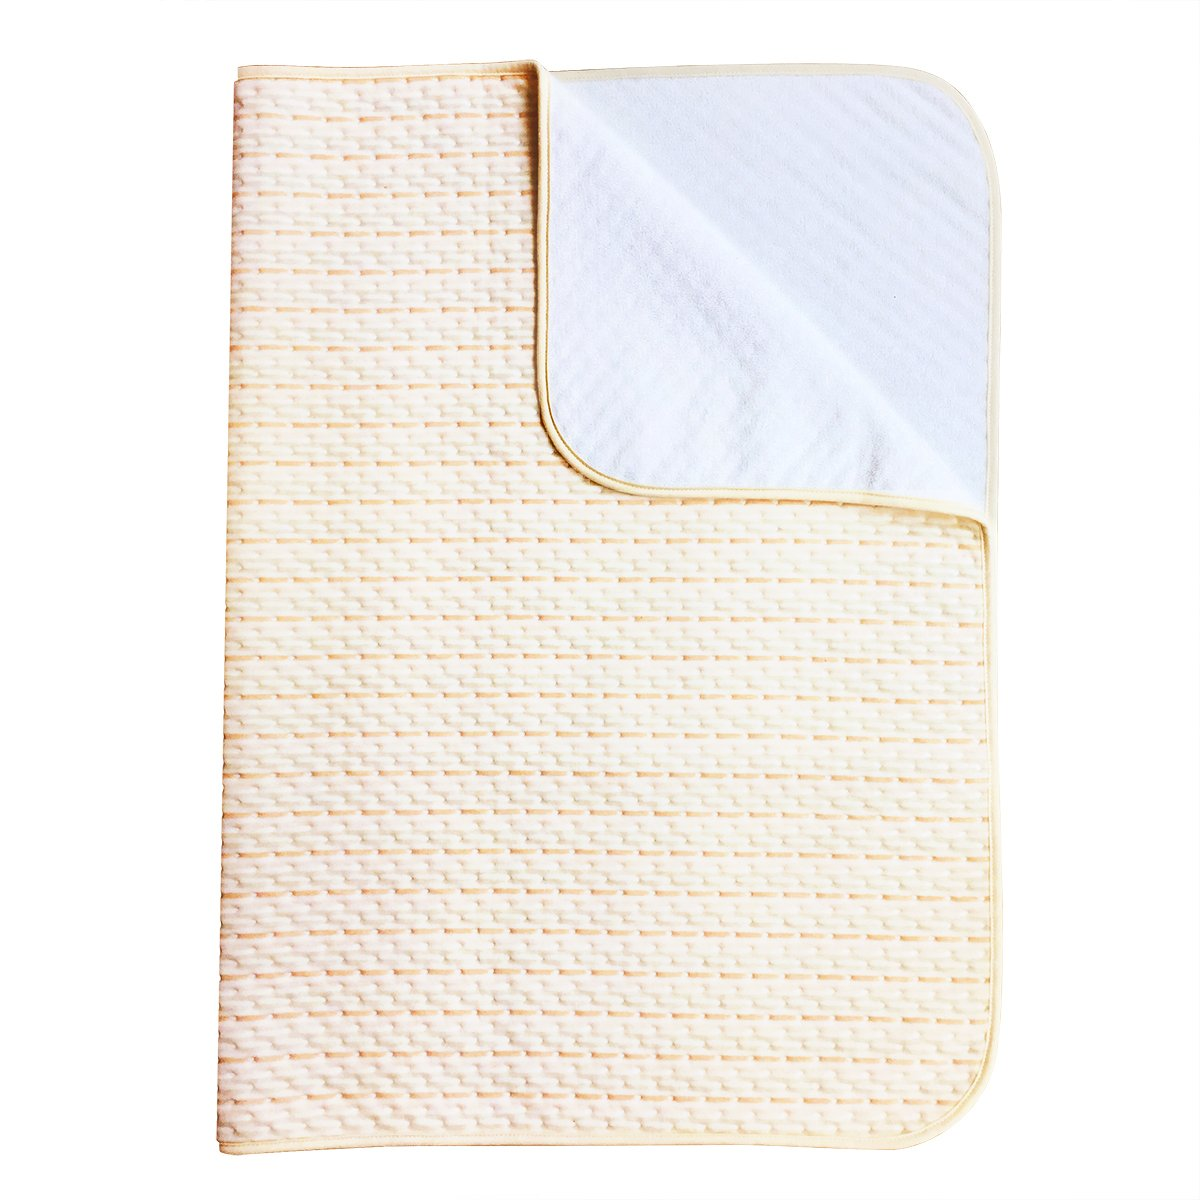 Waterproof Bed Pad Washable & Reusable Underpads 4 Layer